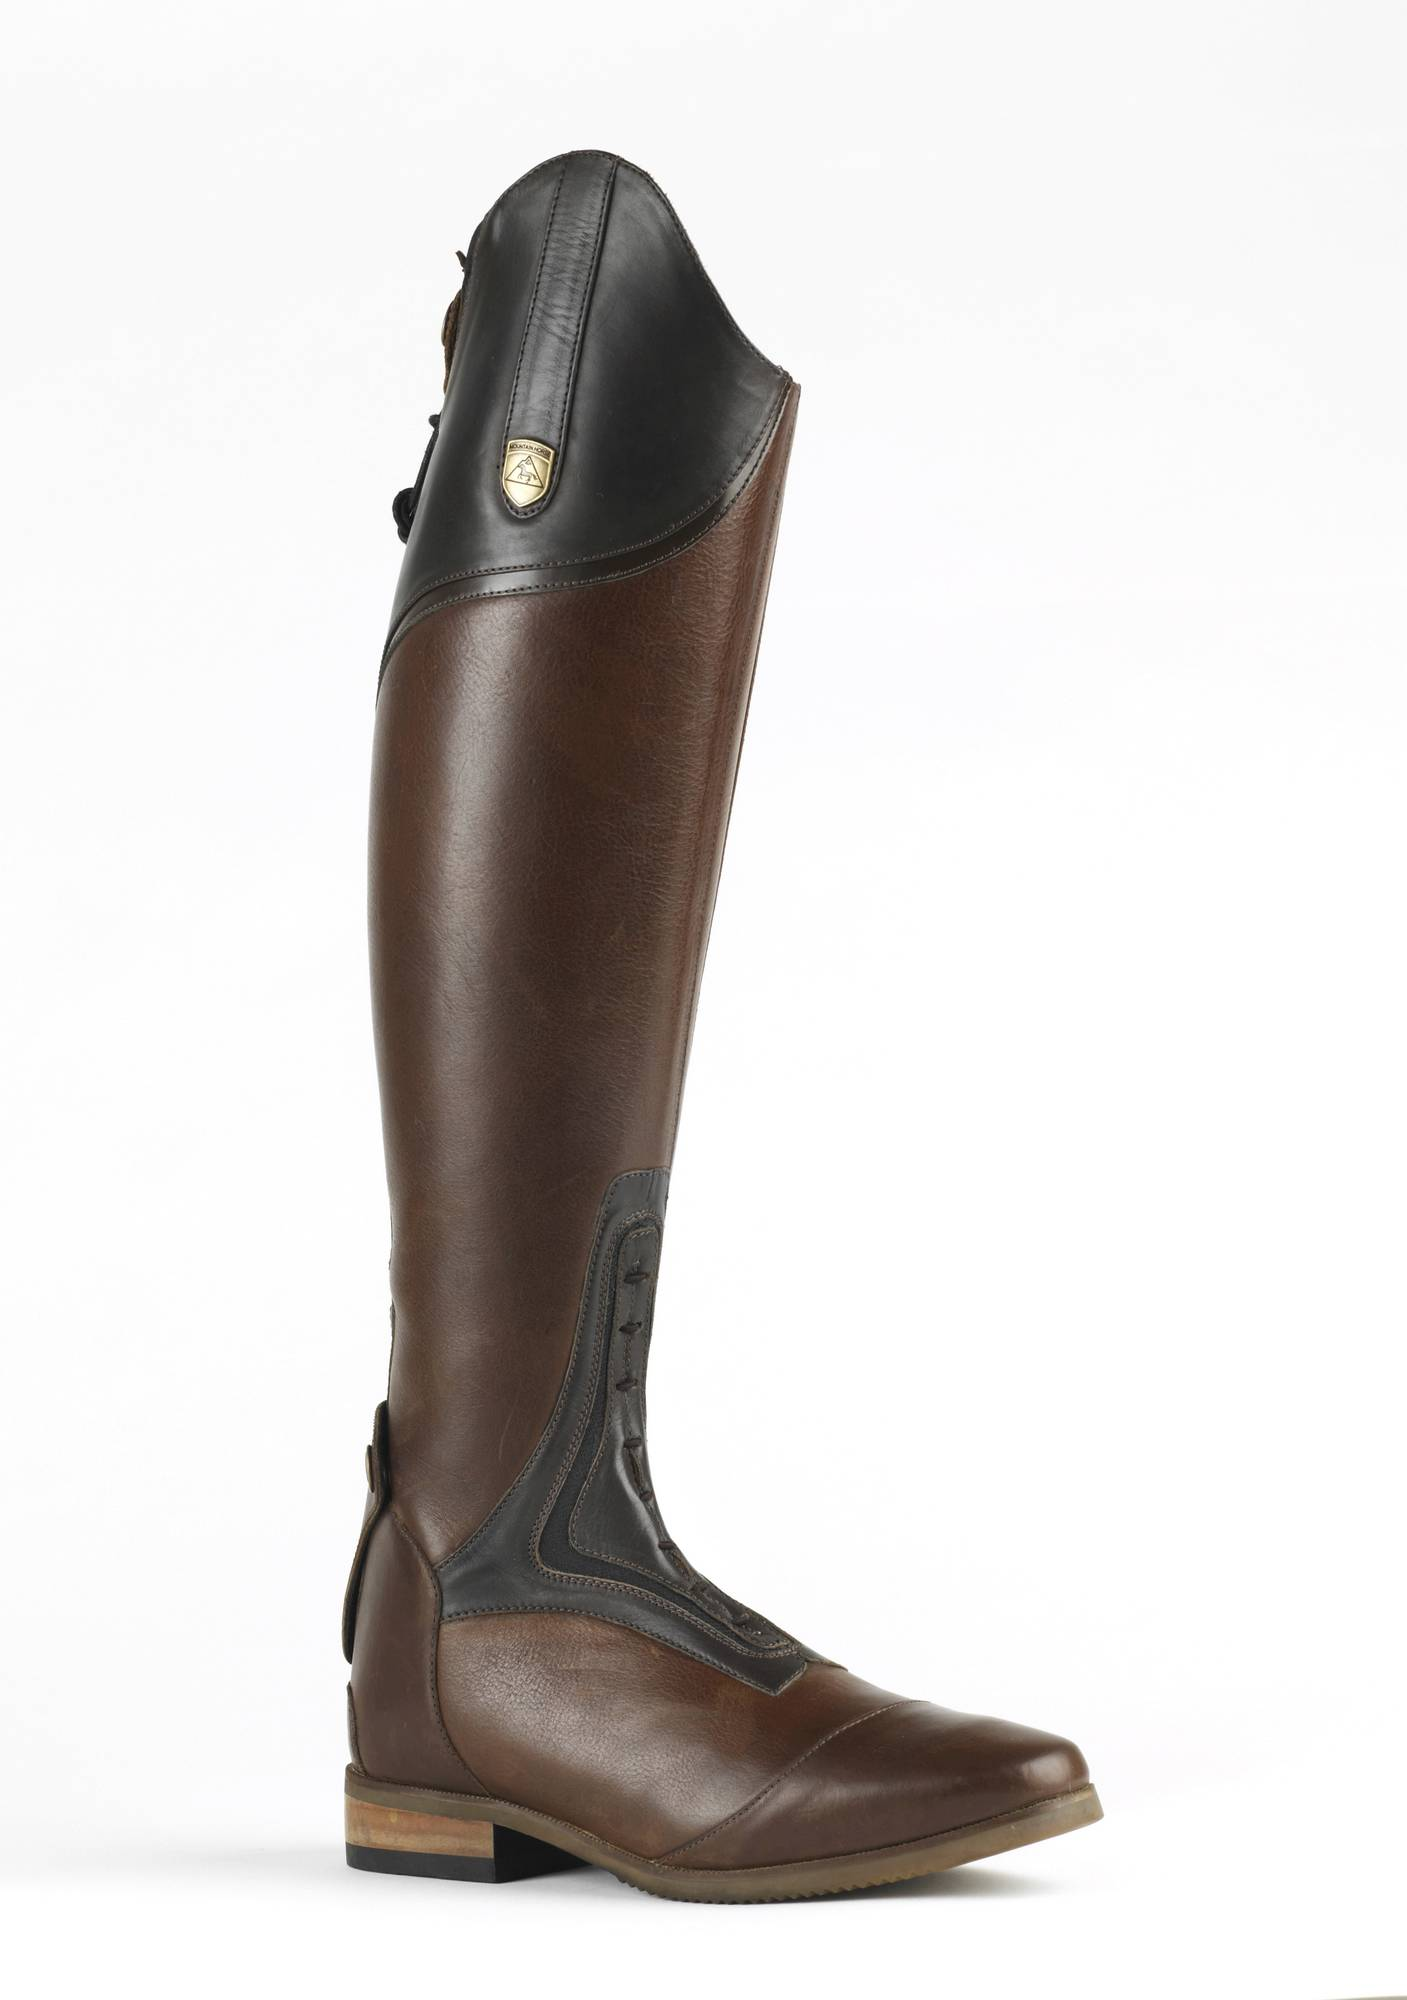 Mountain Horse Sovereign Field Boots - Ladies